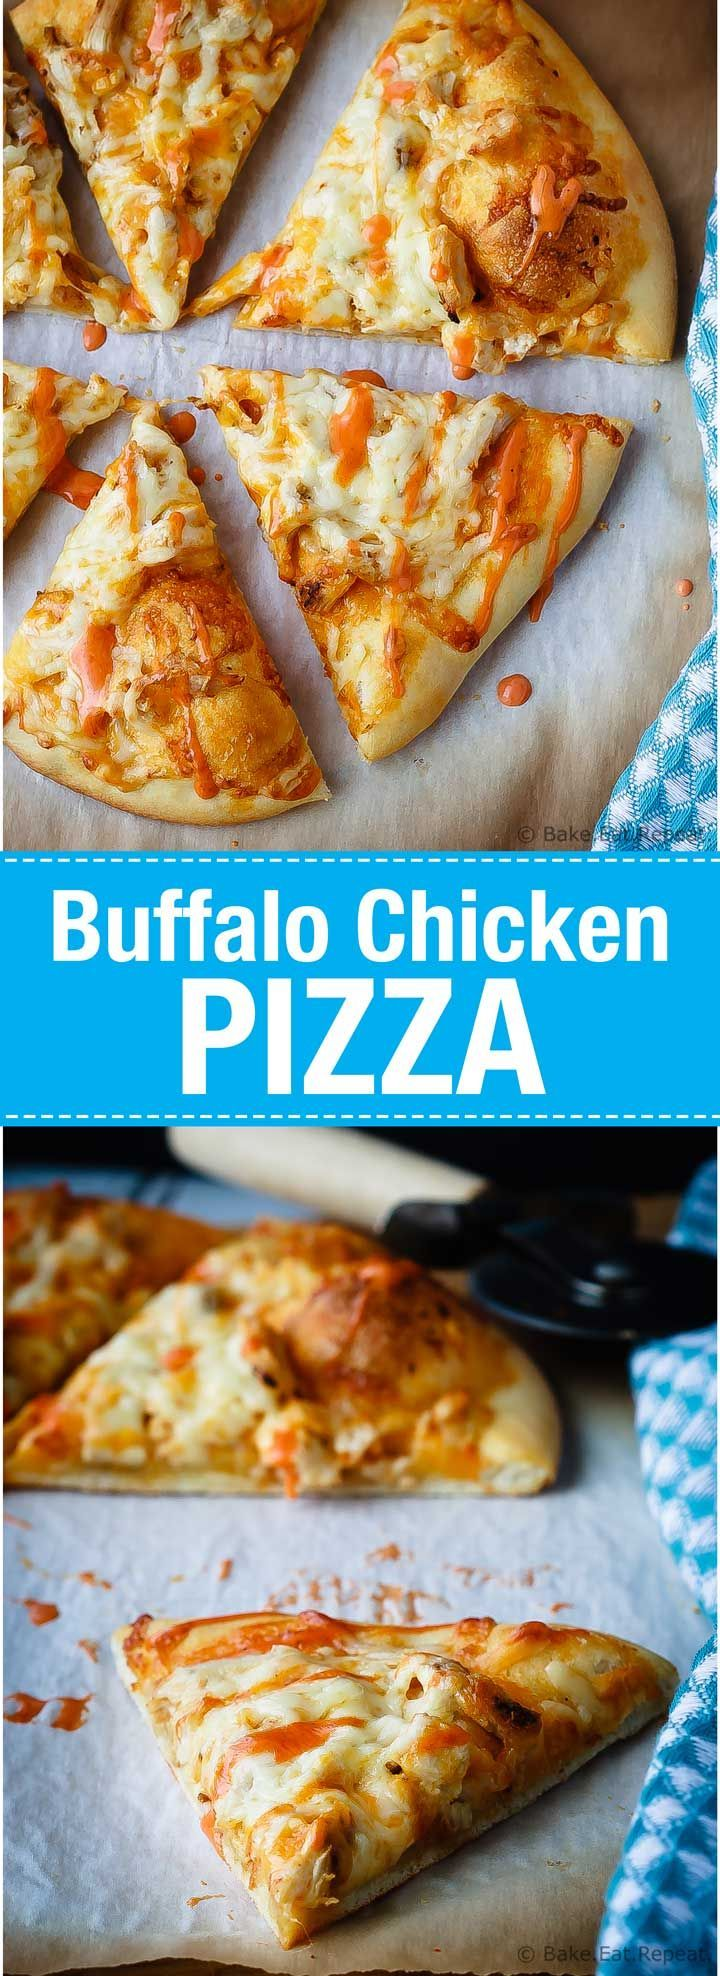 991 best PIZZAS RECIPES images on Pinterest   Pizza recipes, Pizza ...